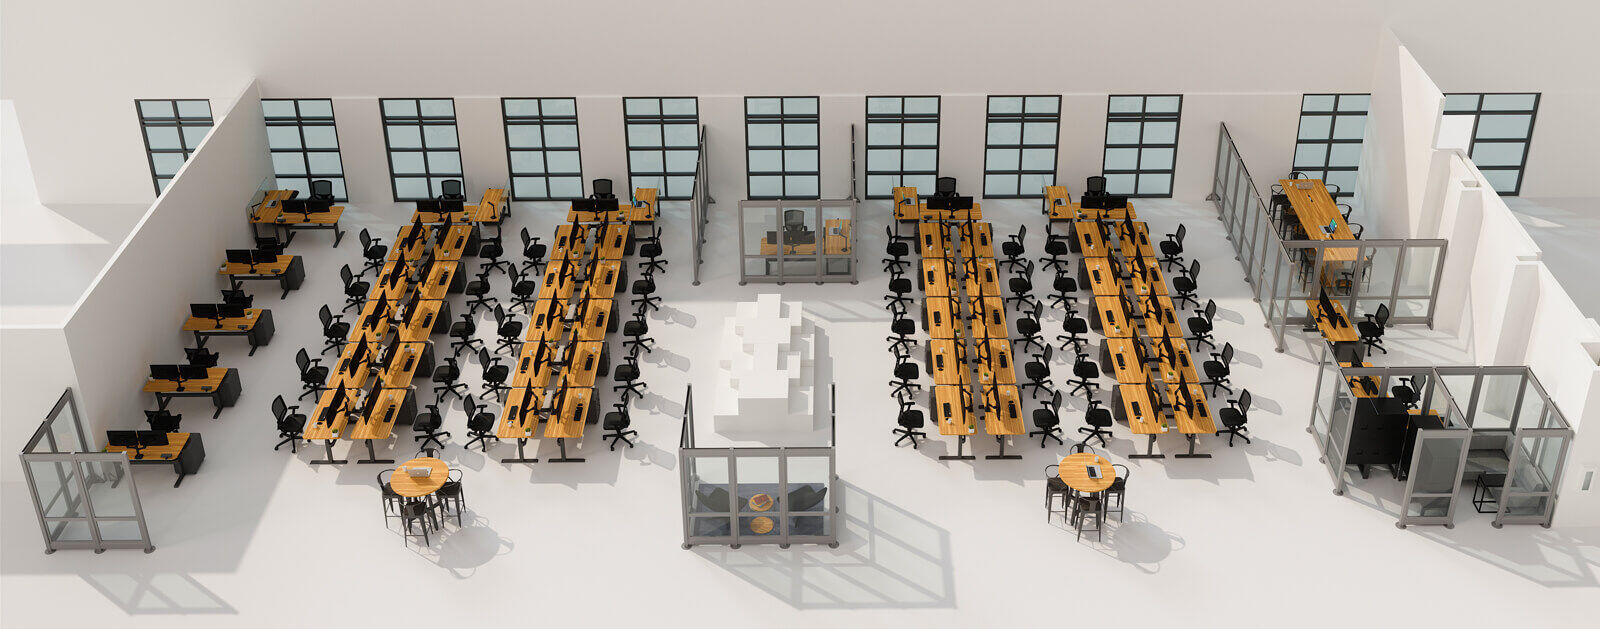 pre-covid layout of workspaces at Vari headquarters